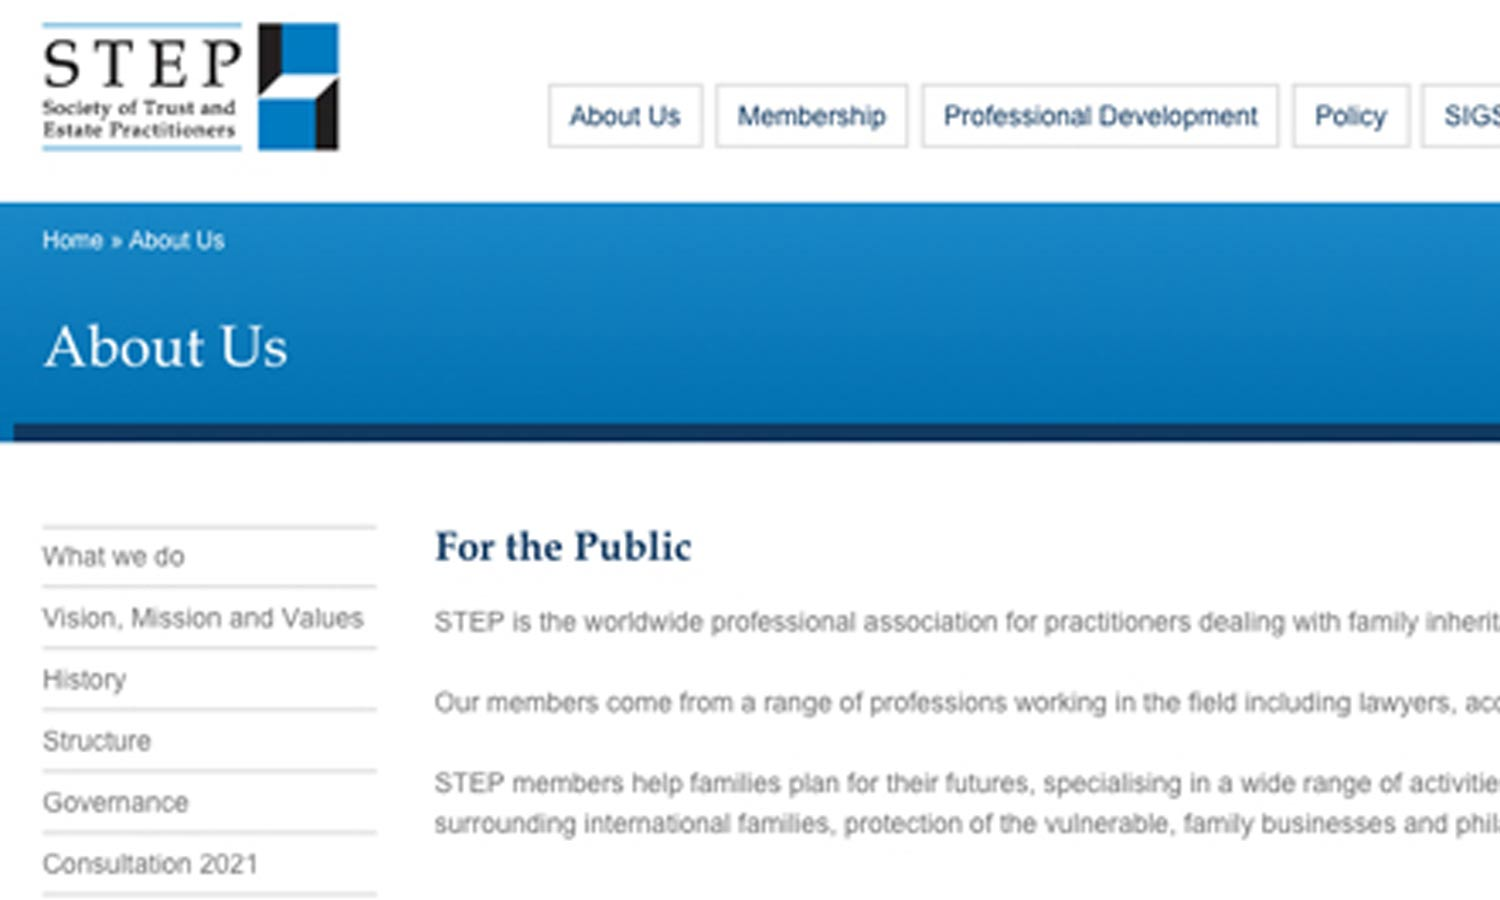 step society of trust and estate practitioners chapman eastway daniel baldovin and luke day have all become members of step recently step is the worldwide professional association for practitioners dealing